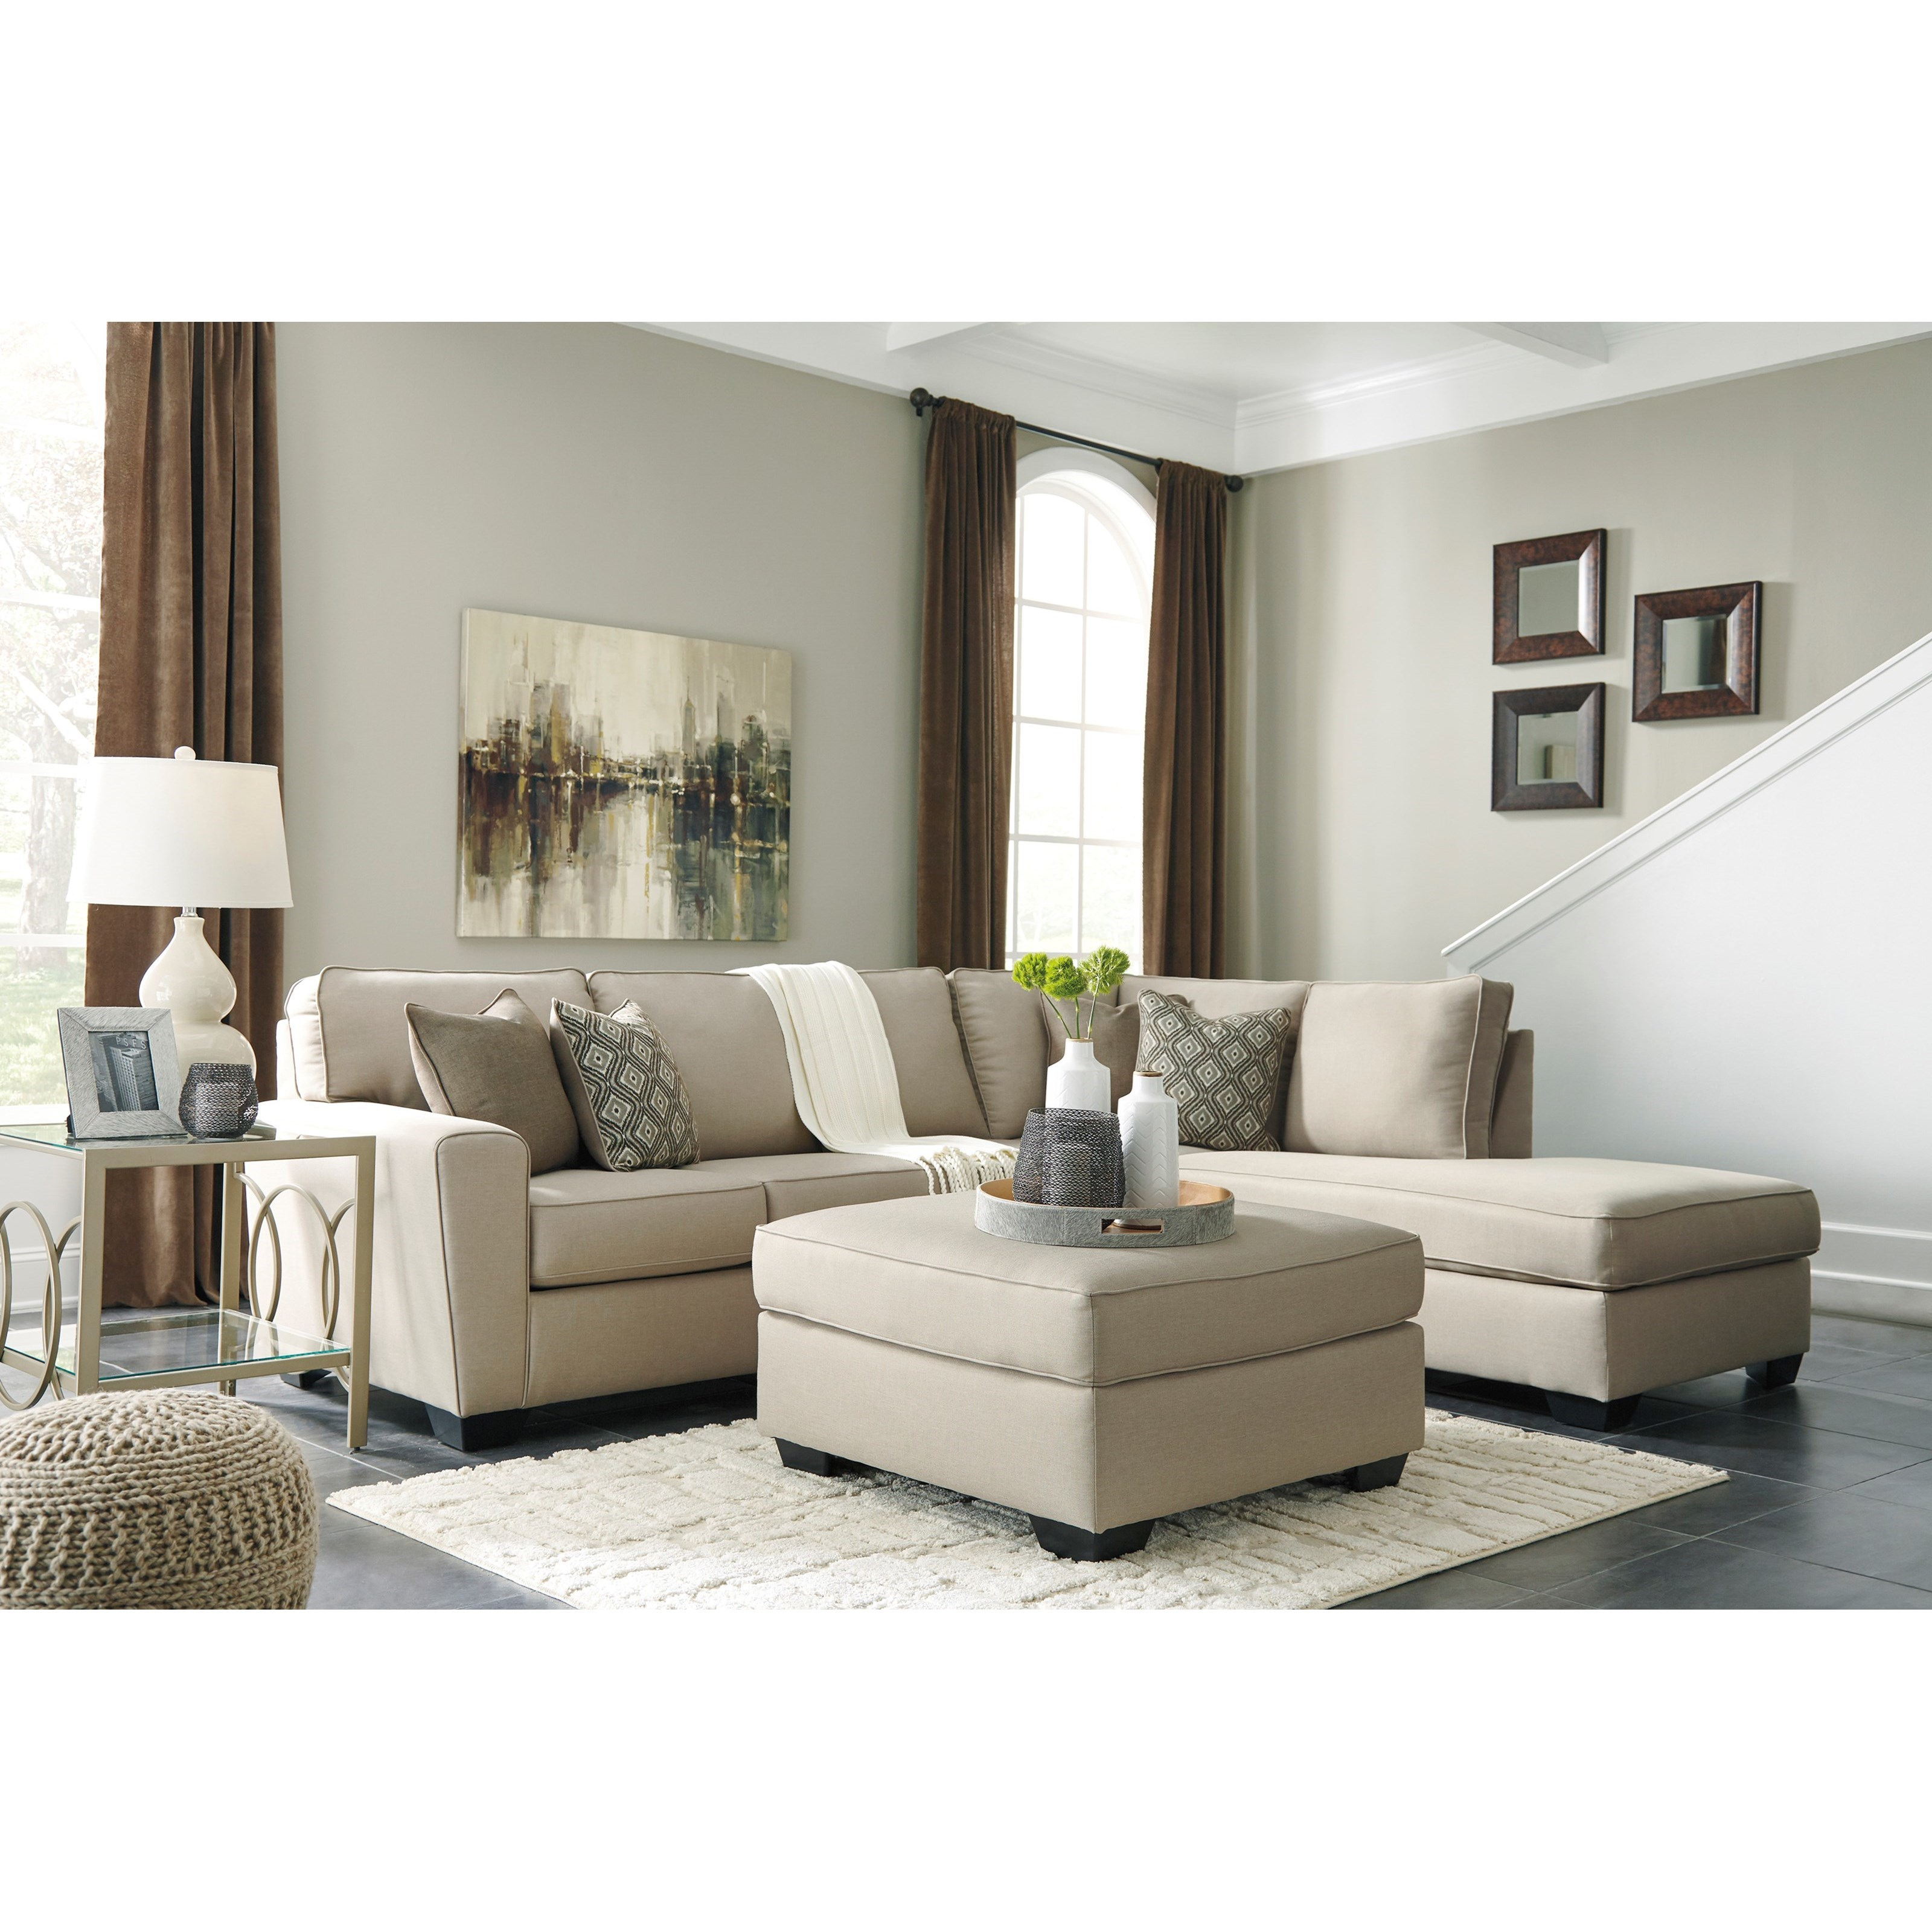 JB King Evette Stationary Living Room Group